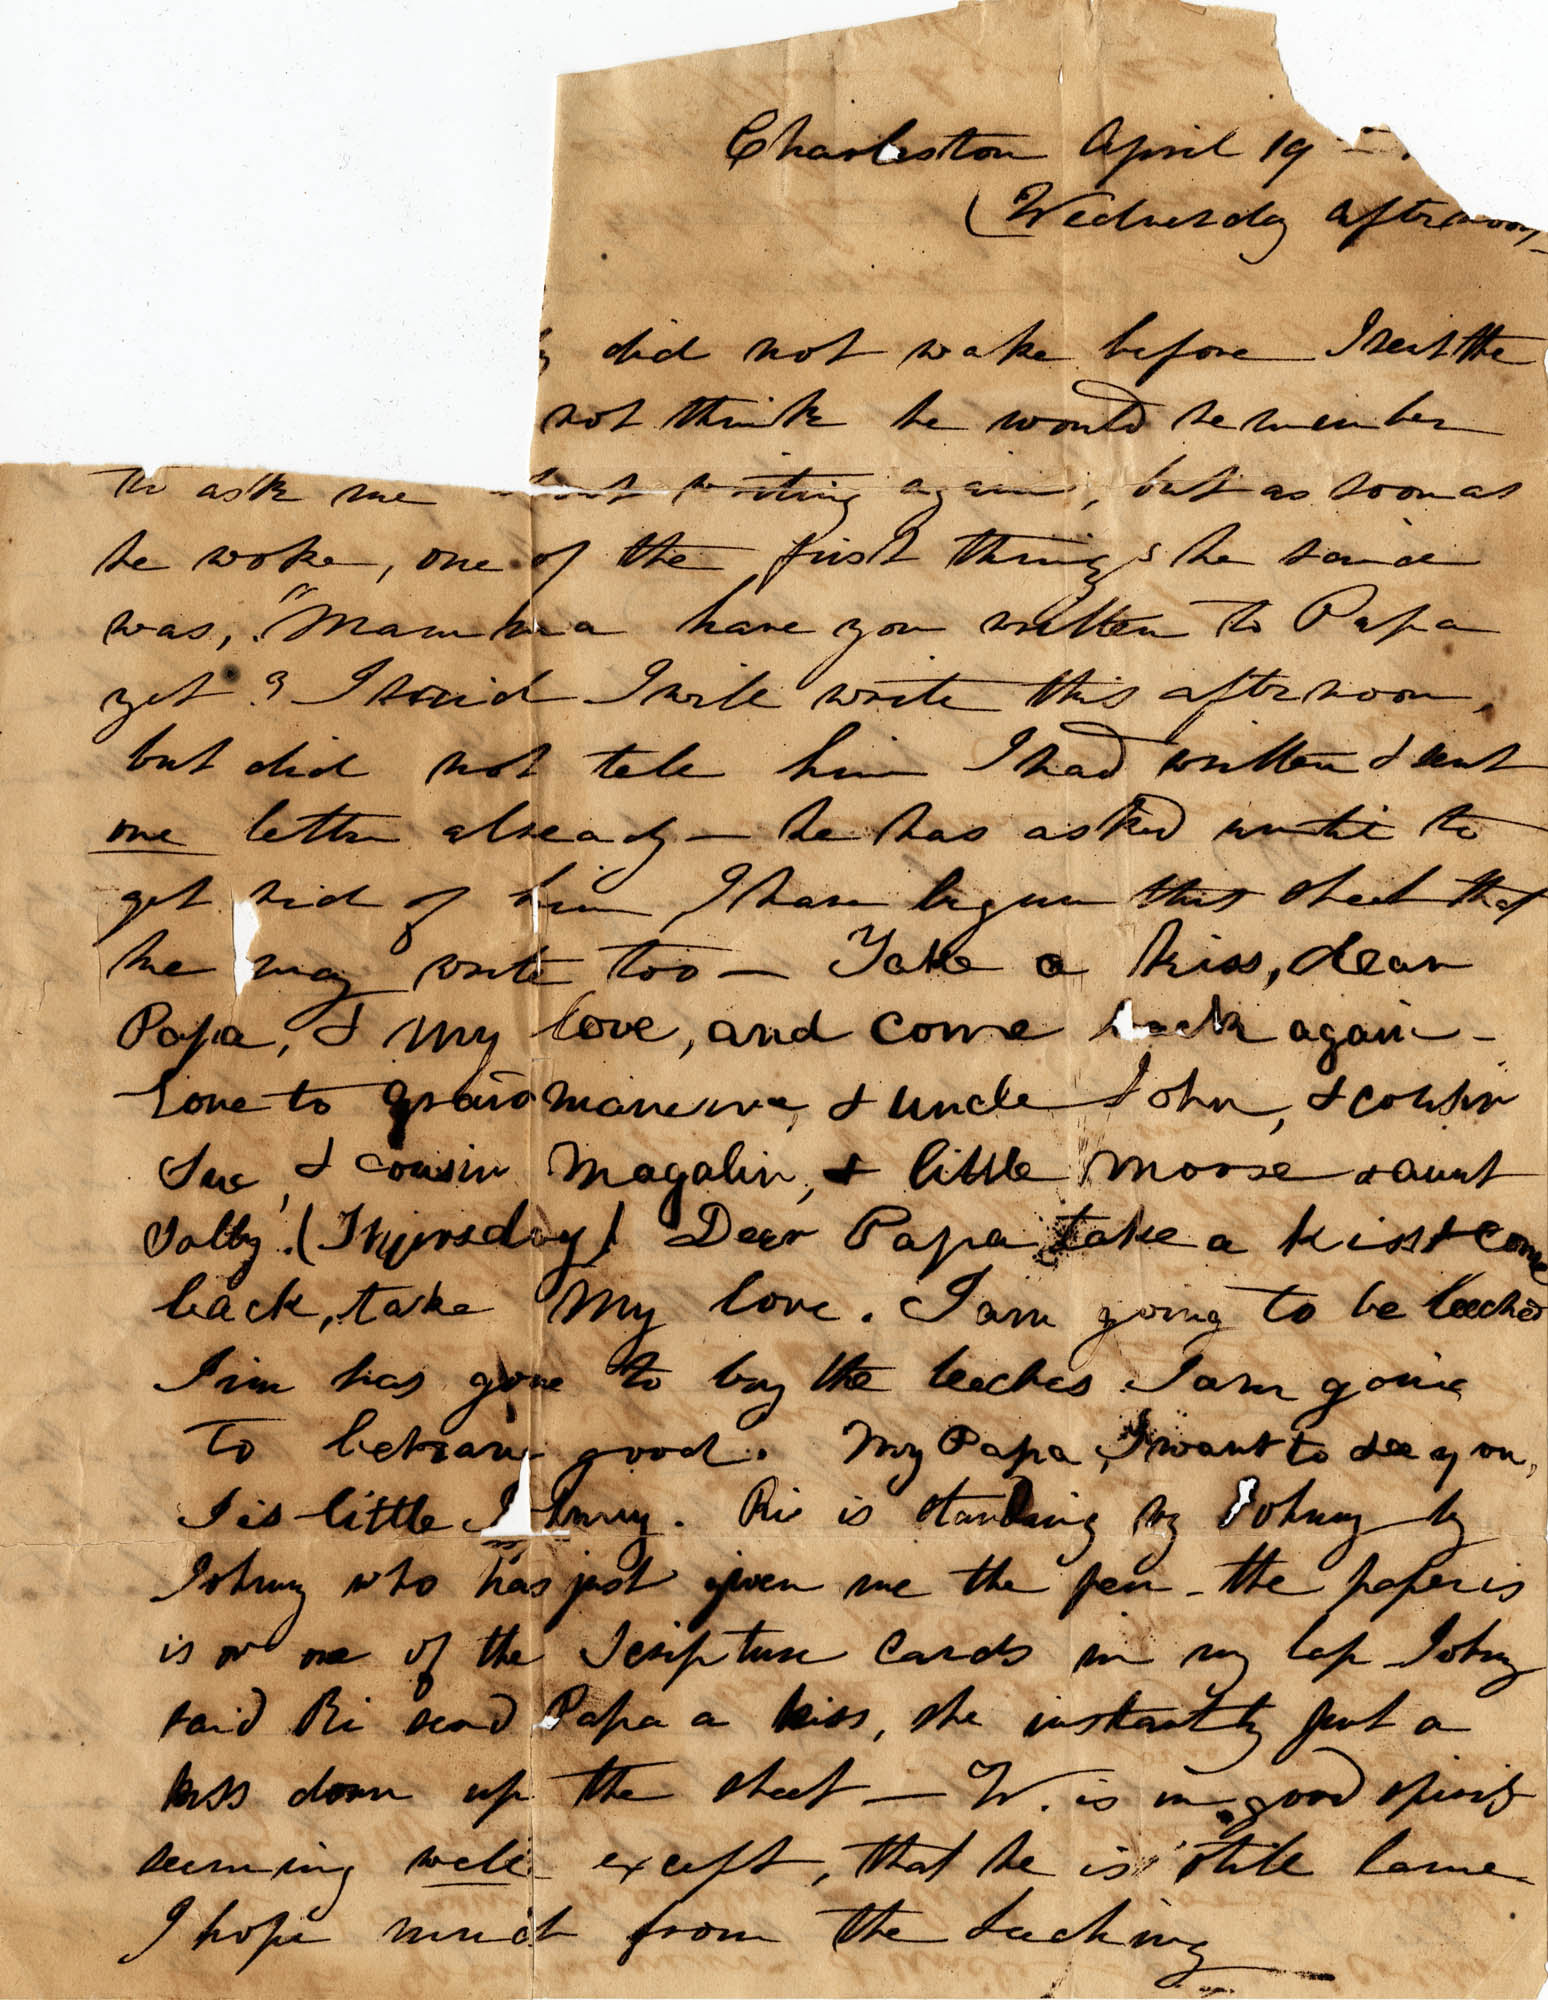 046. Anna Keith to Paul Trapier Keith -- April 19, 1844